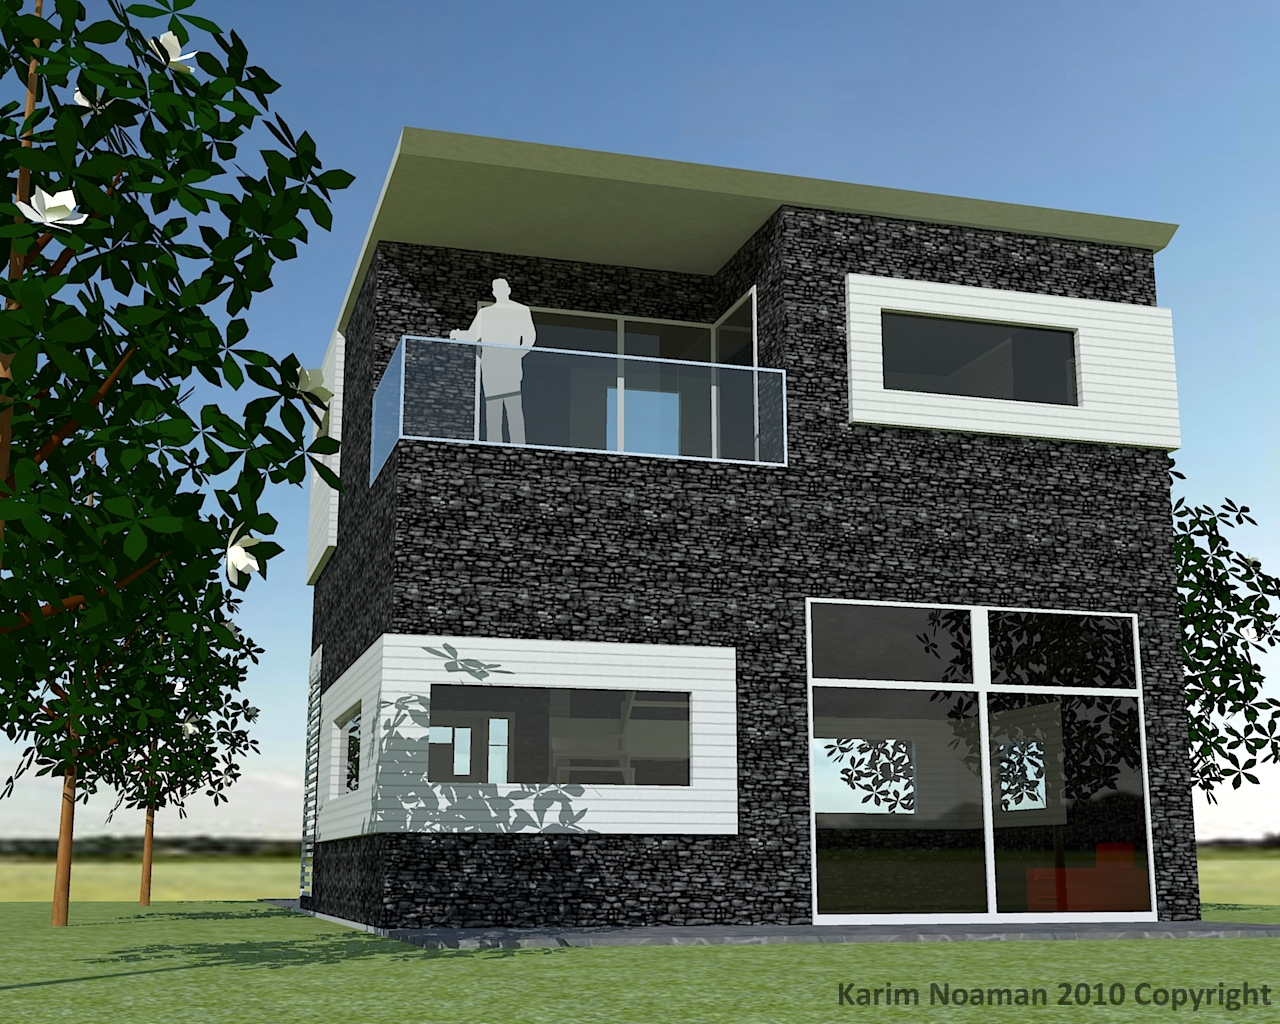 Simple modern house design by knoaman on deviantart for Simple small modern house